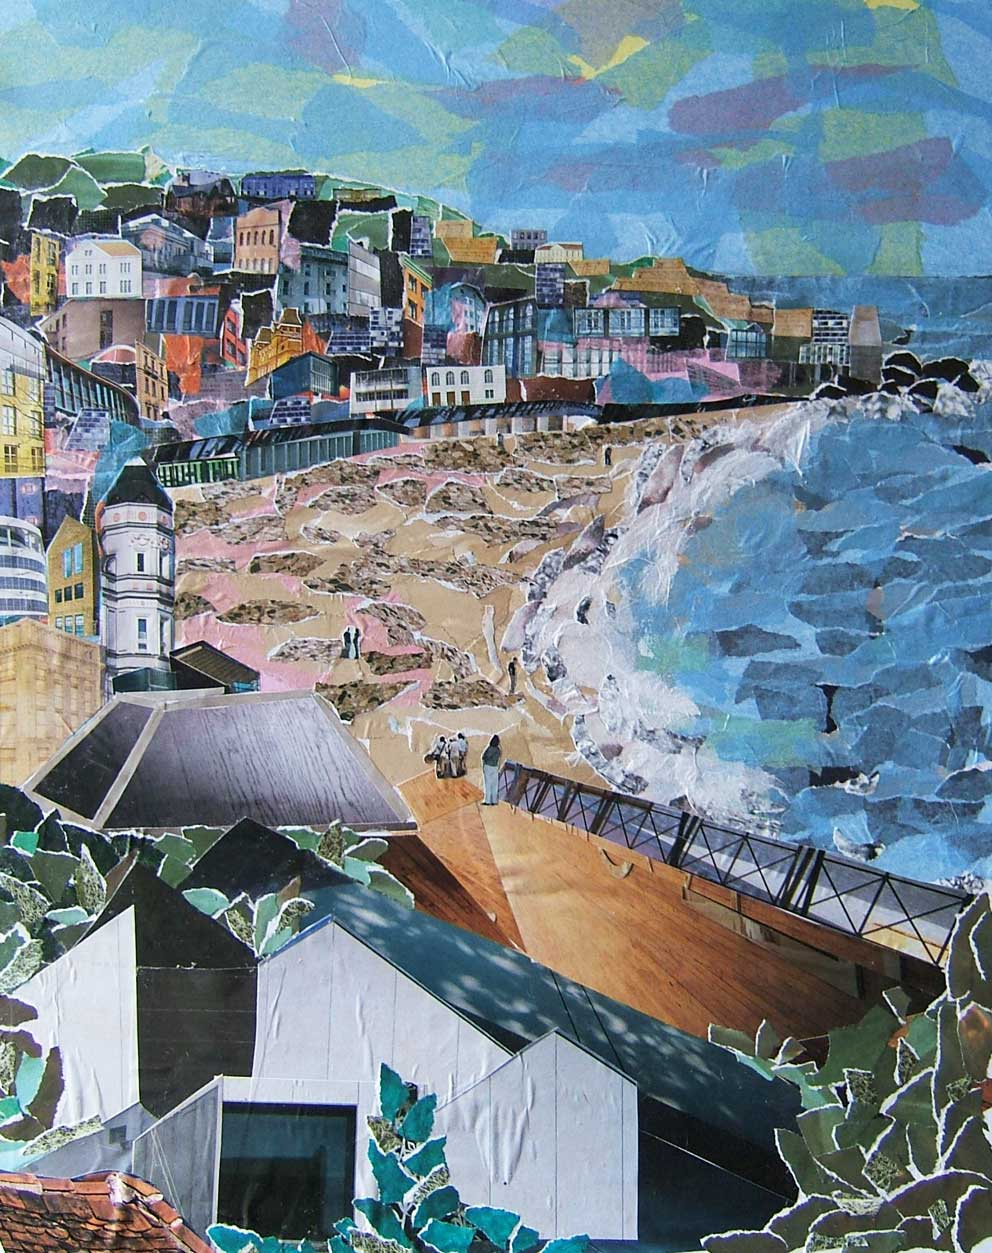 `Seaside Town collage made from torn up magazine pages by artist Rosalind Freeborn